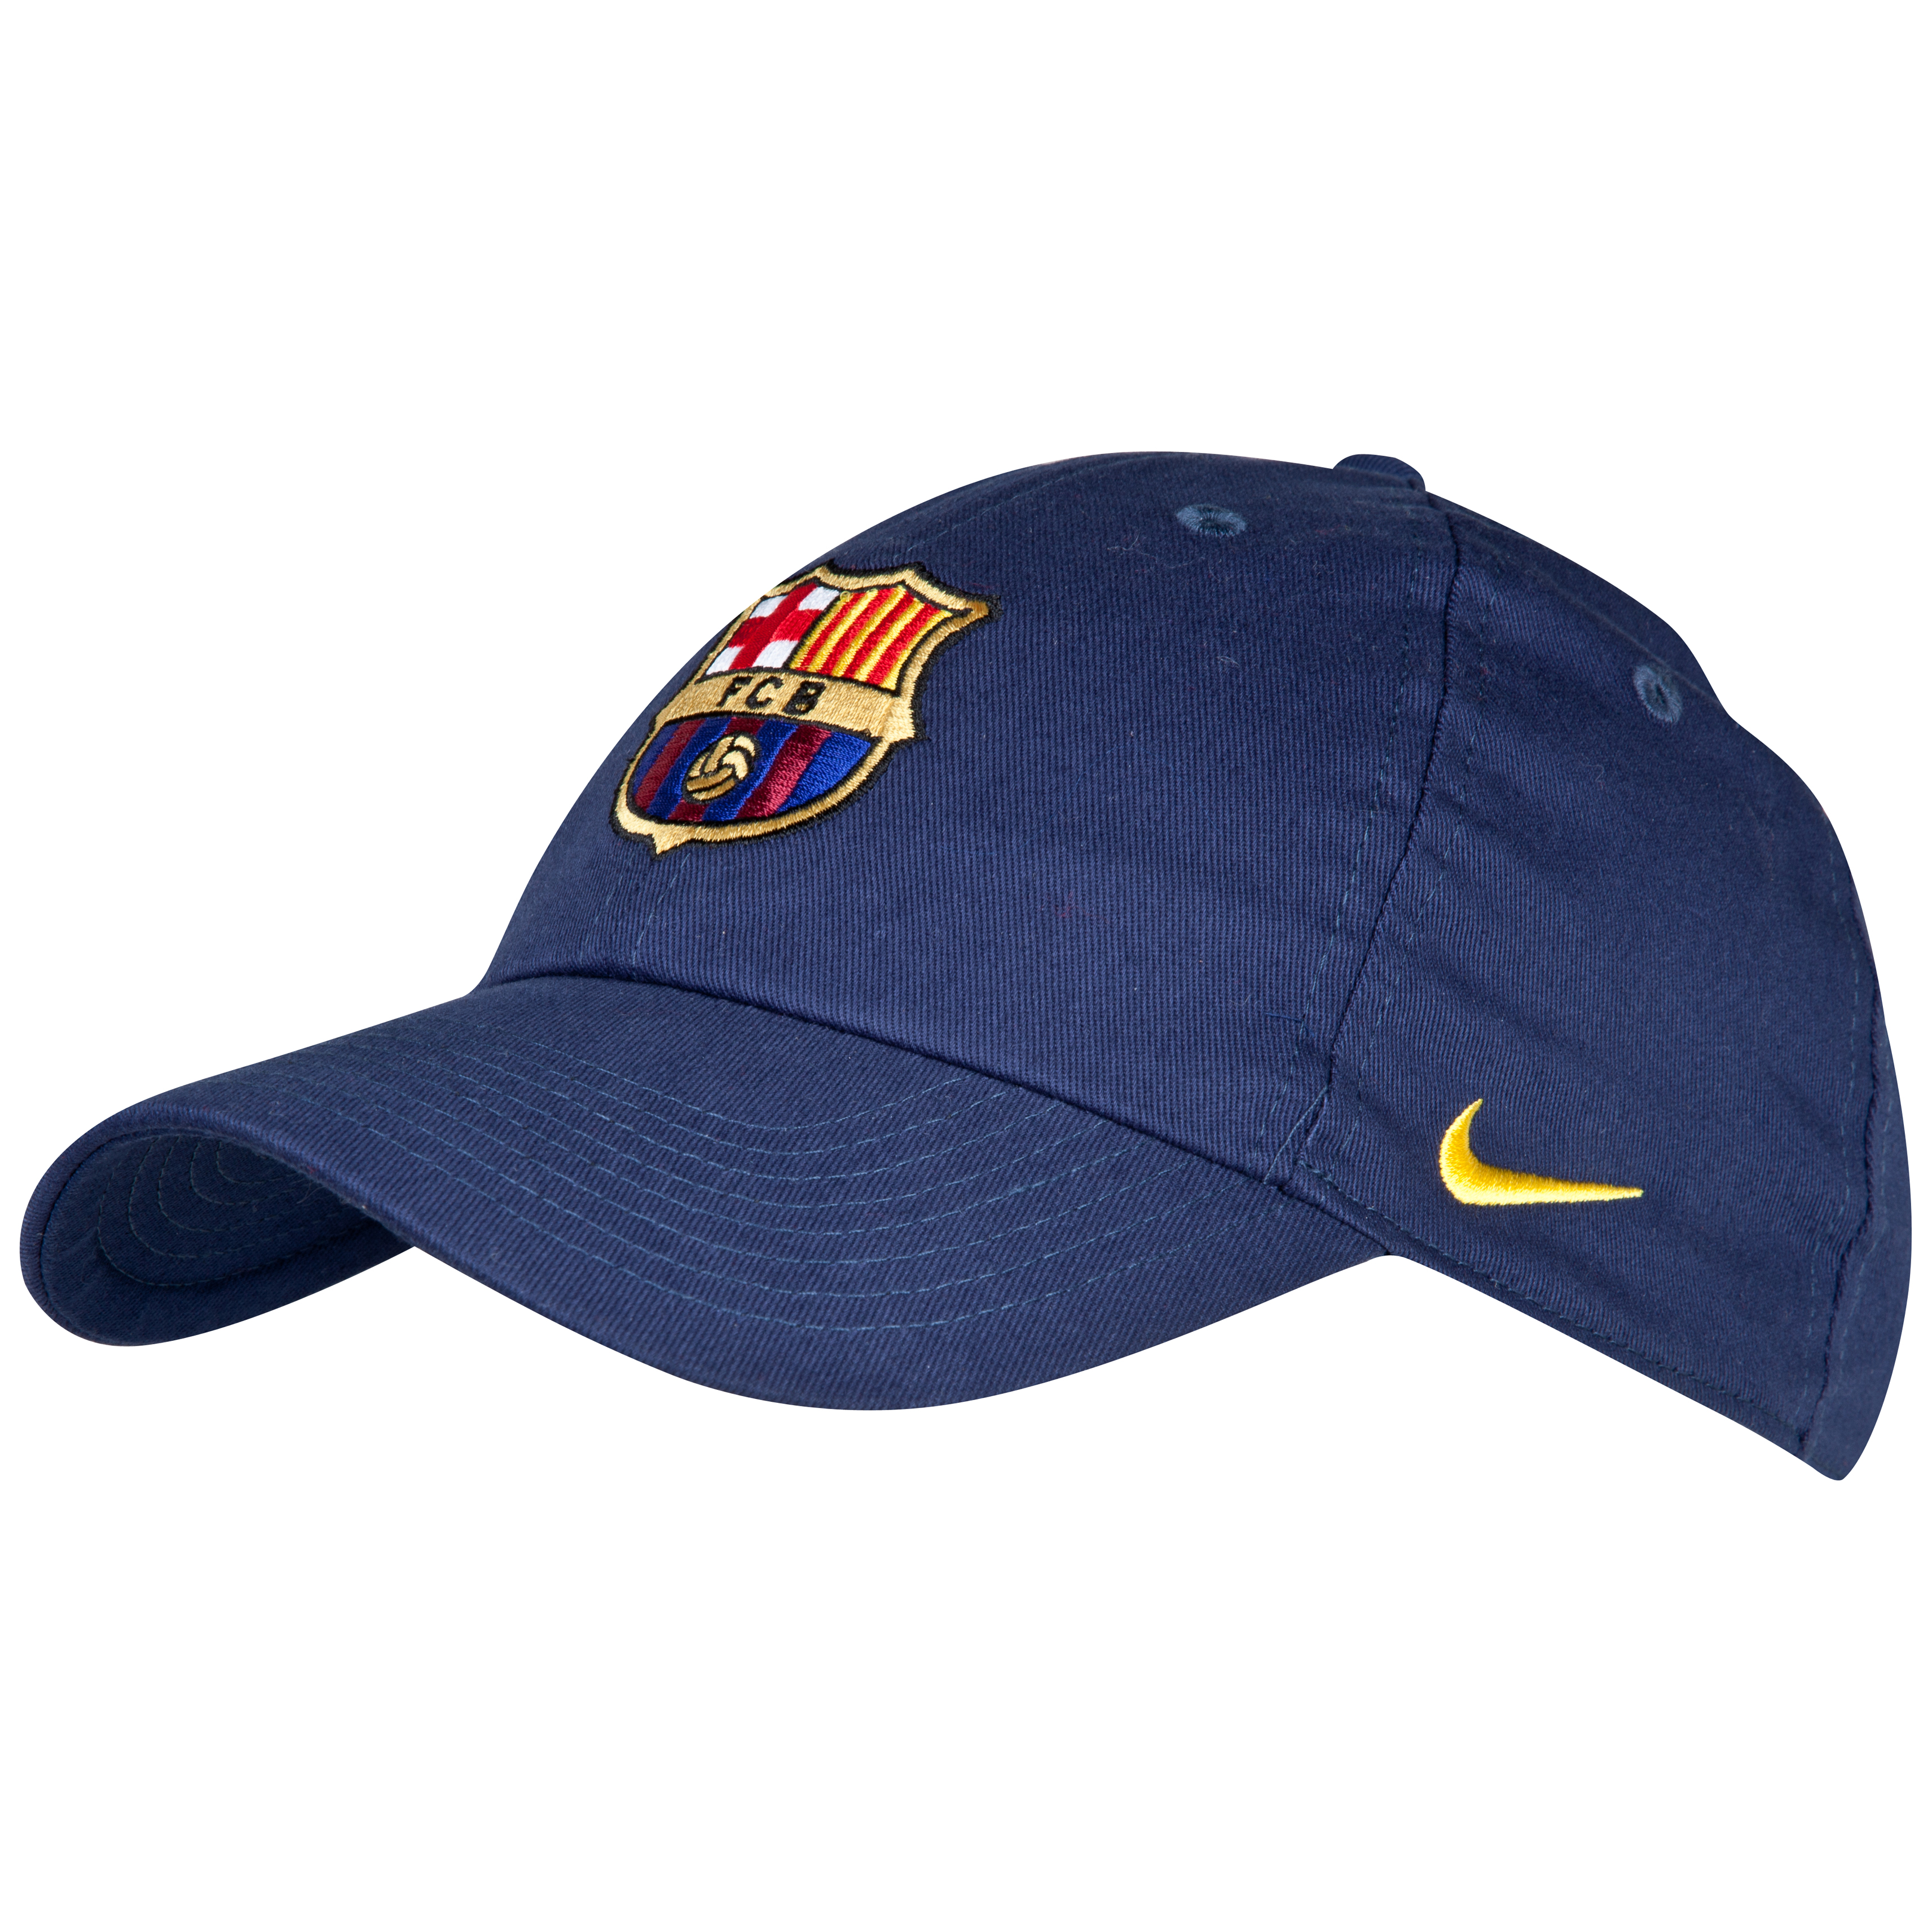 Barcelona Core Cap - Midnight Navy/Tour Yellow